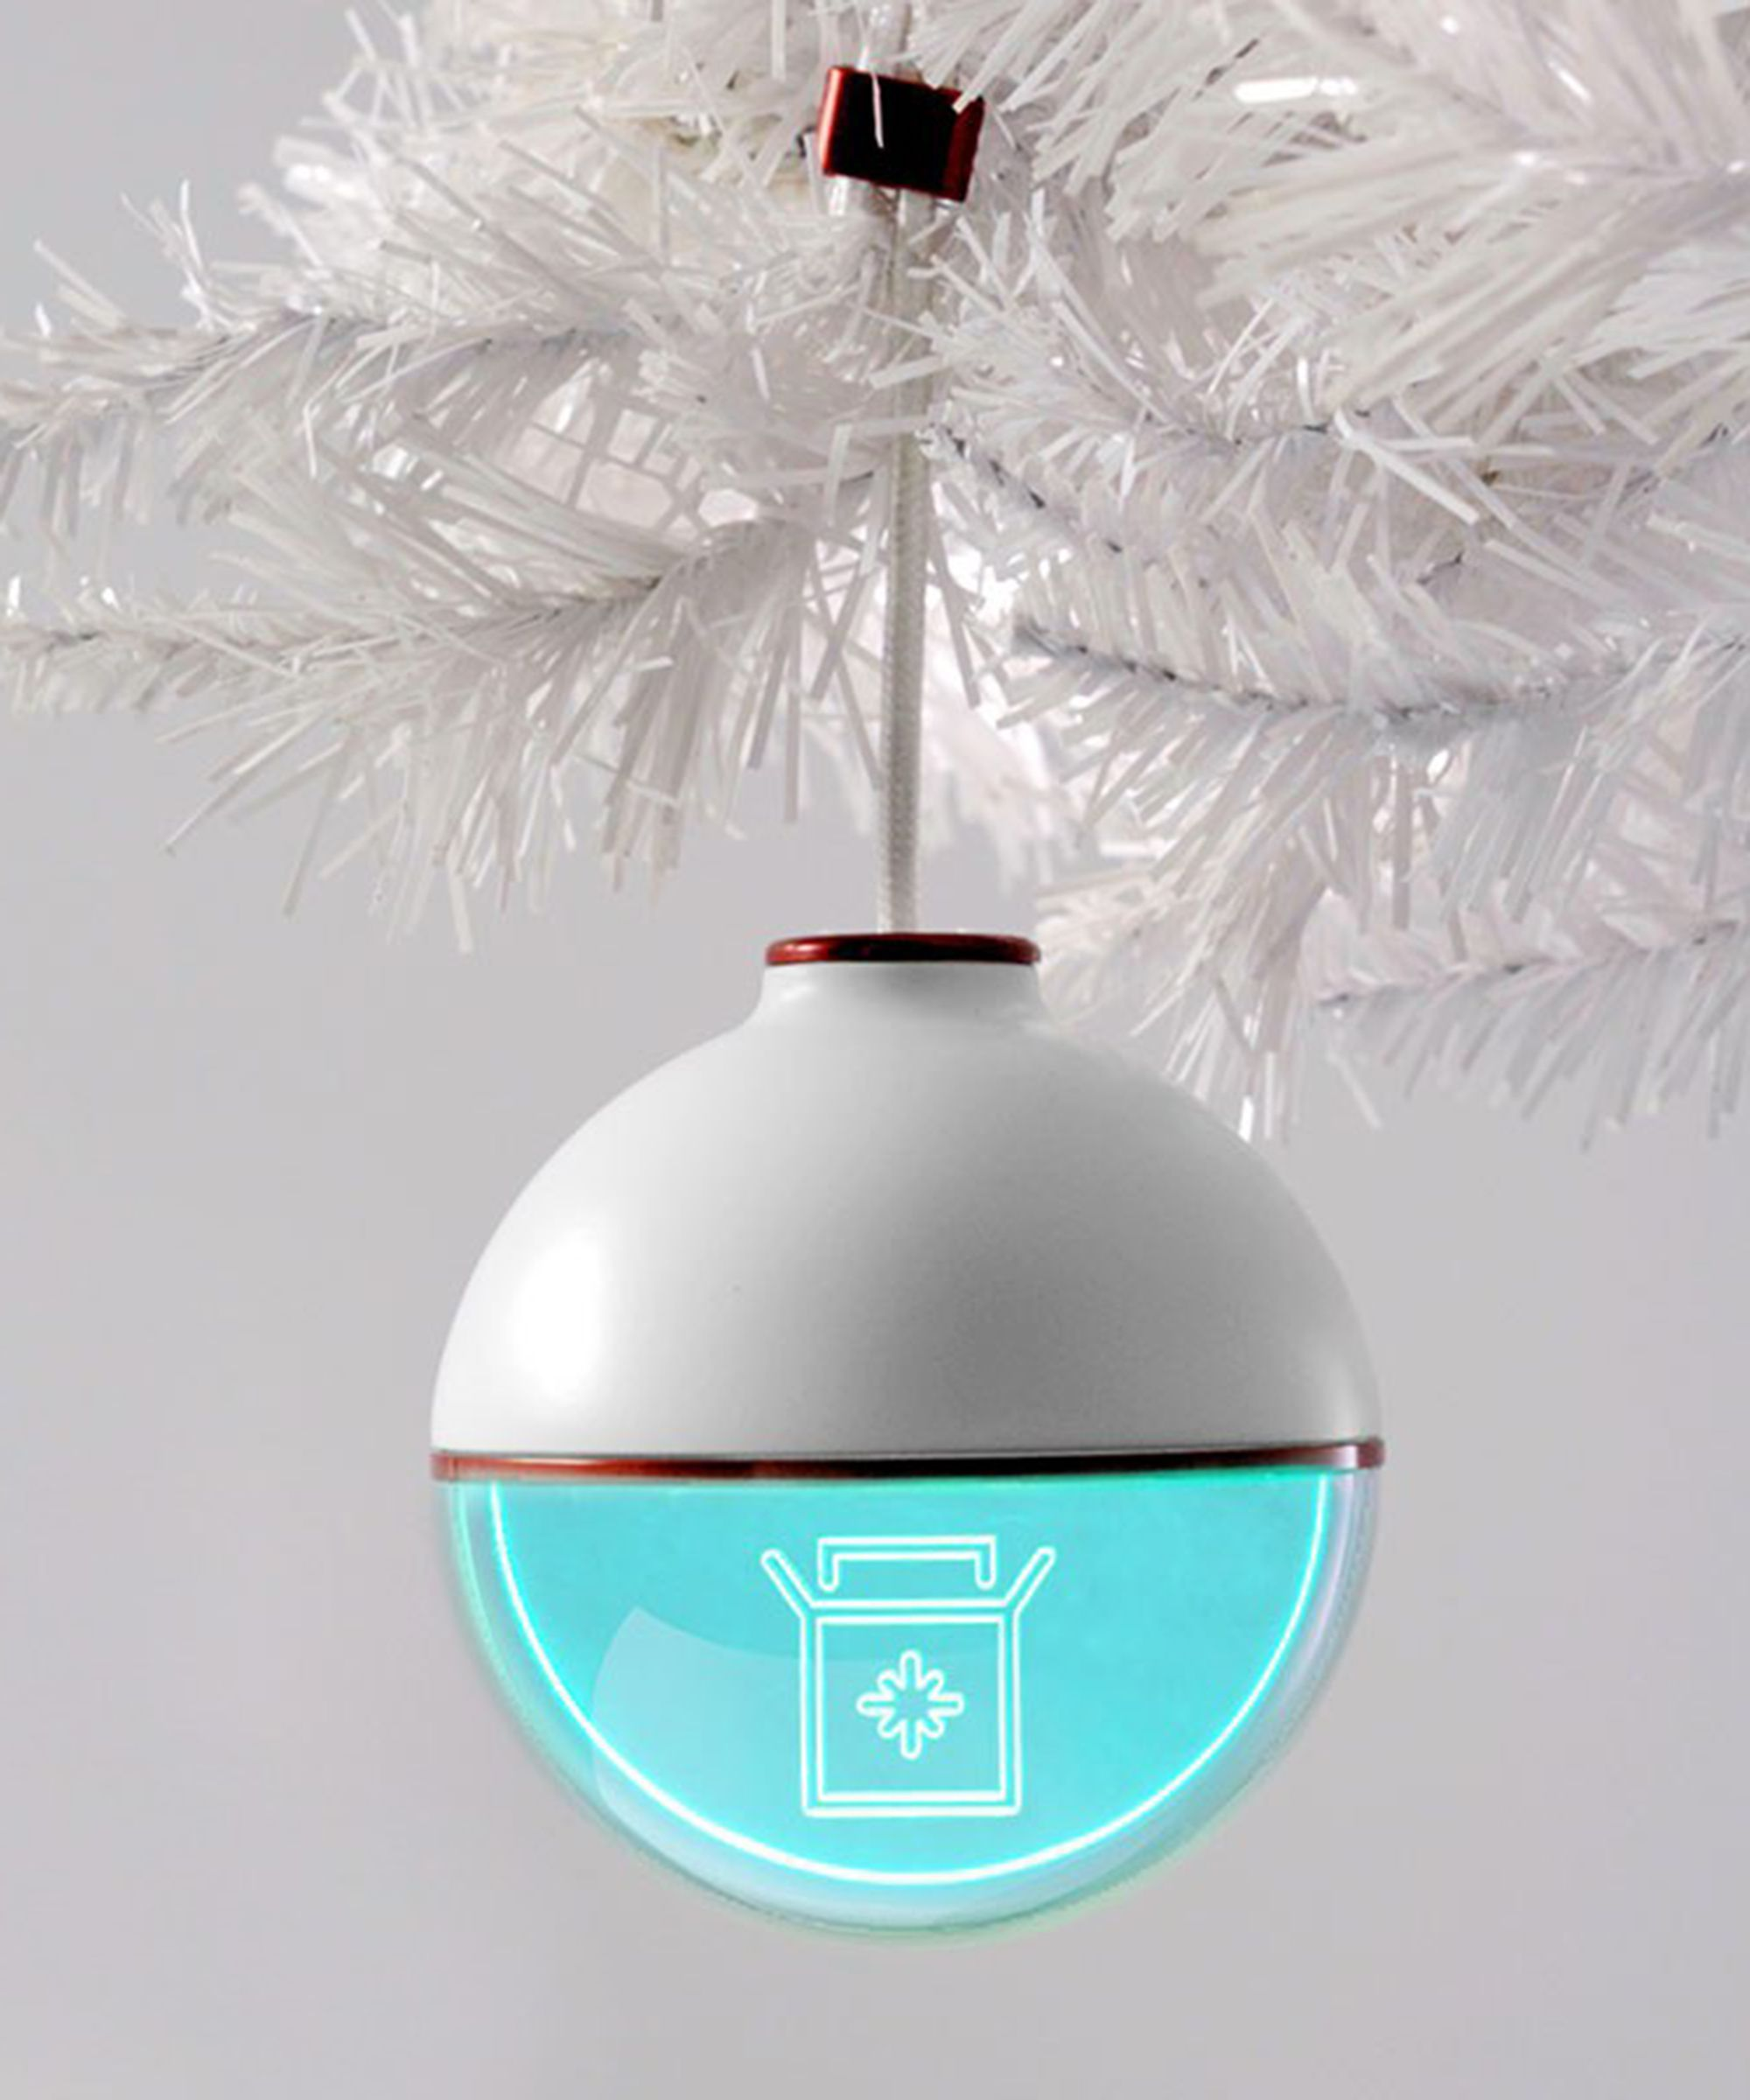 Every Tree Needs This Package-Tracking Ornament #refinery29 http://www.refinery29.com/2016/12/133826/us-postal-service-christmas-tree-package-tracking-ornament